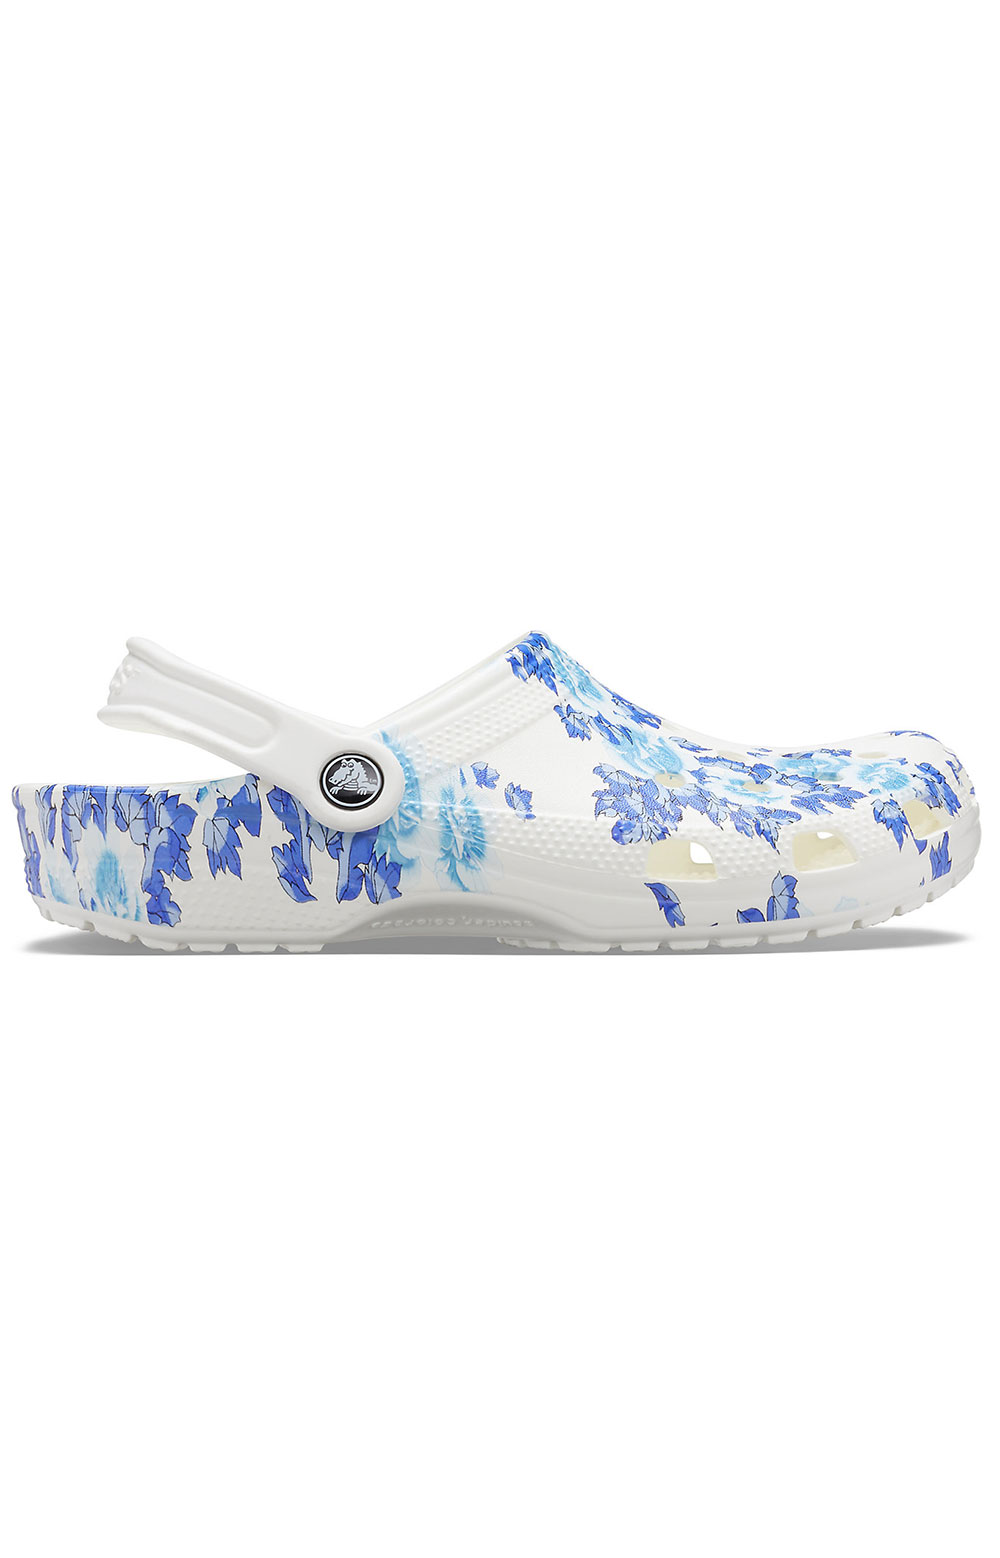 Classic Printed Floral Clogs - White/Blue 2